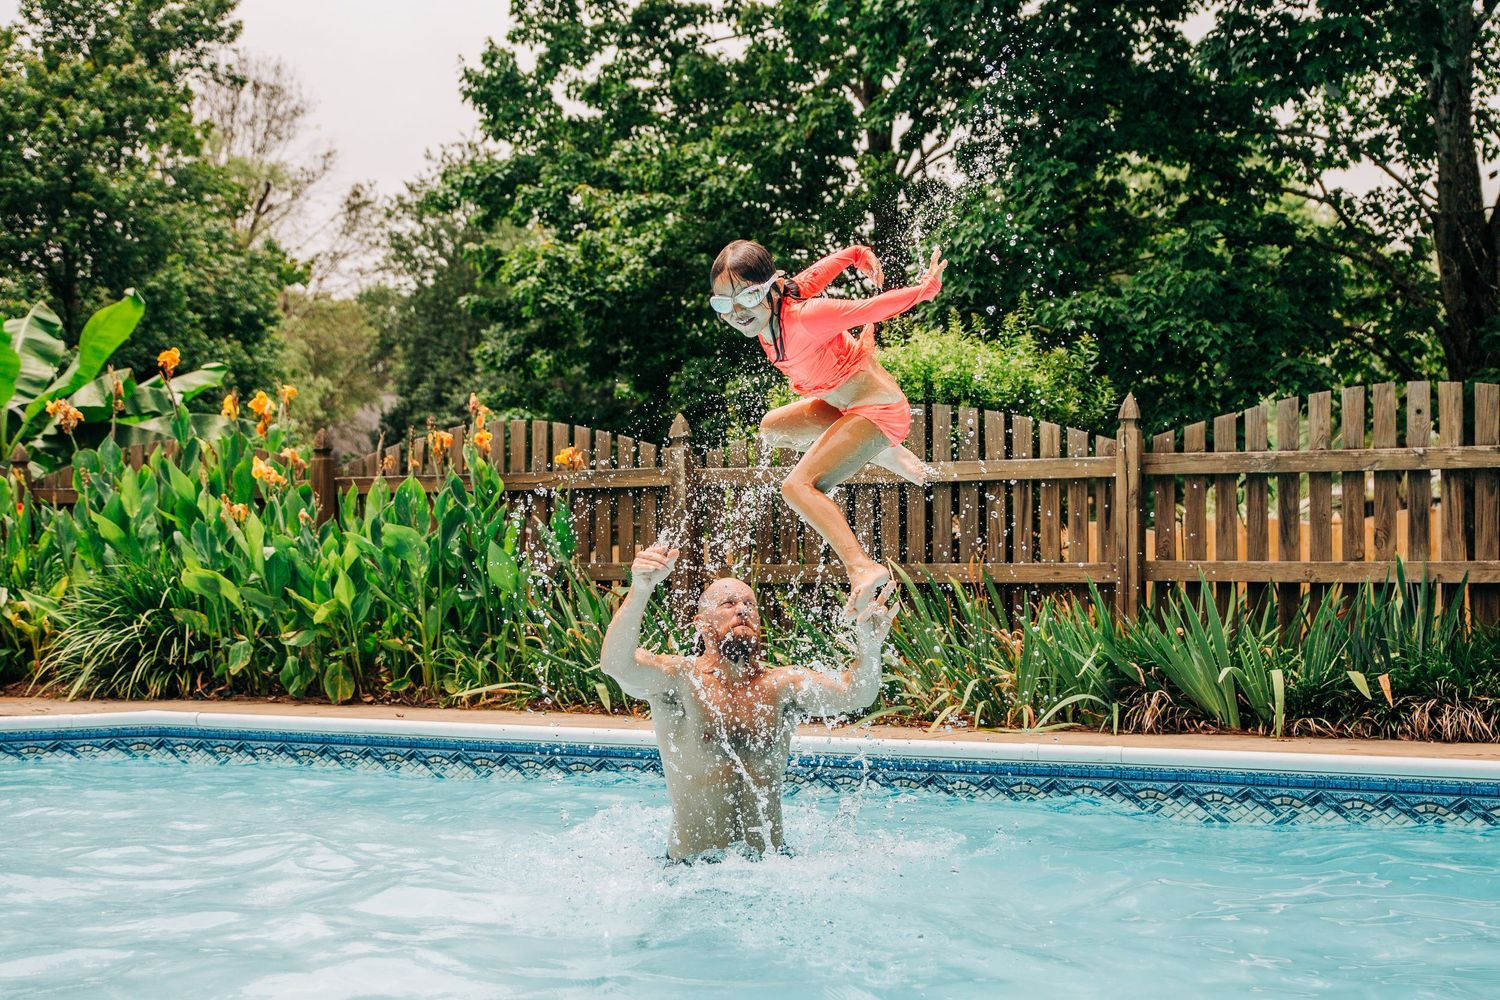 Dad throwing little girl in air in the pool